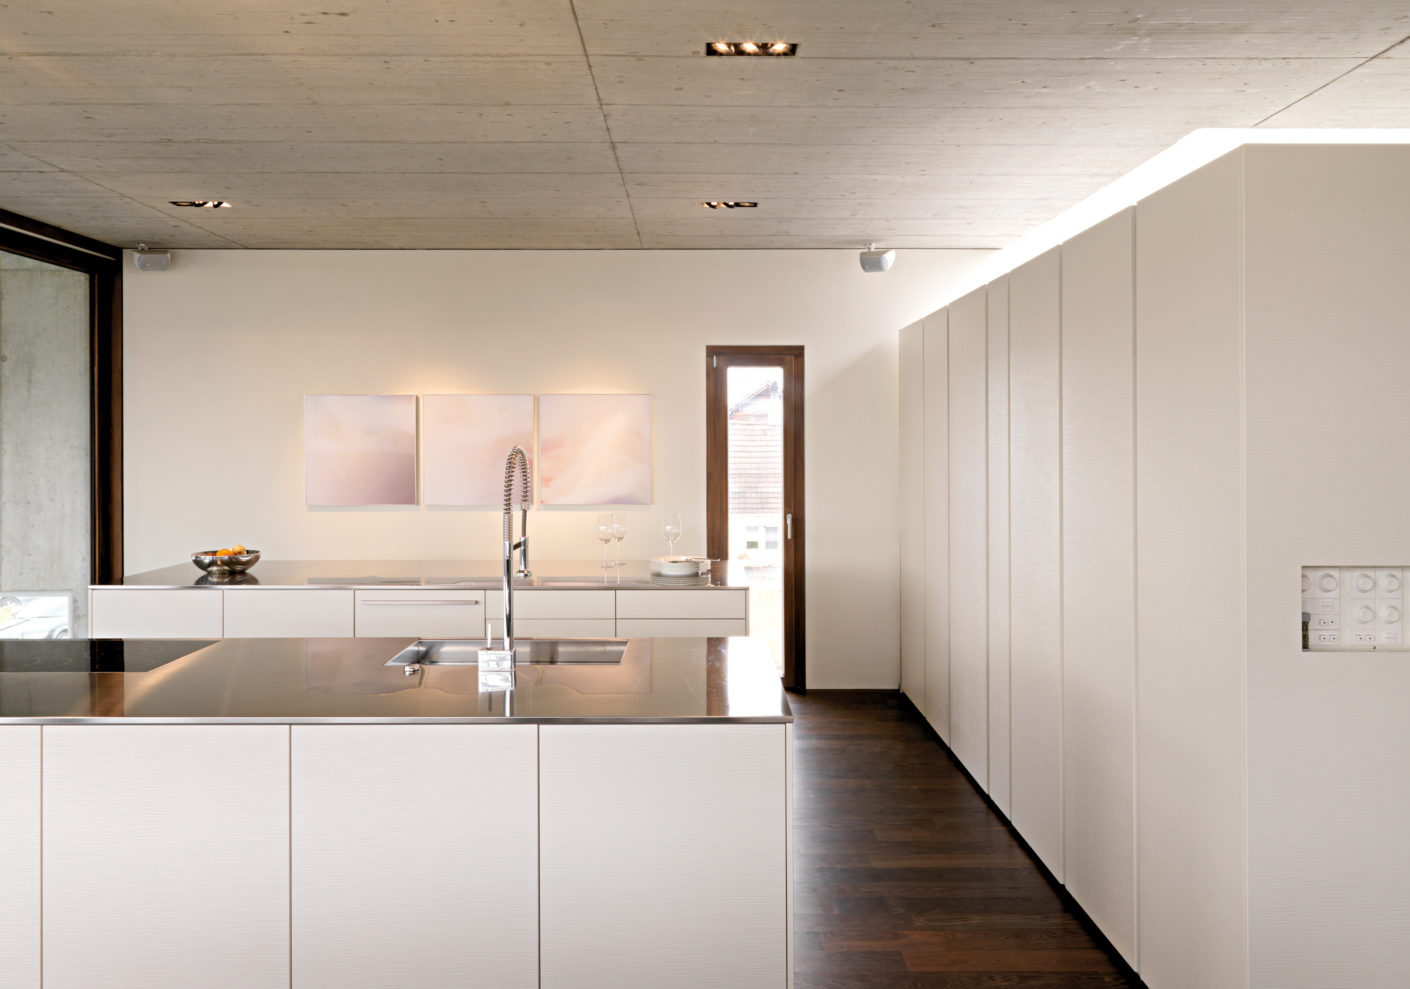 For the center of the house Leicht Küchen placed two equal kitchen islands parallel to the length dining table.